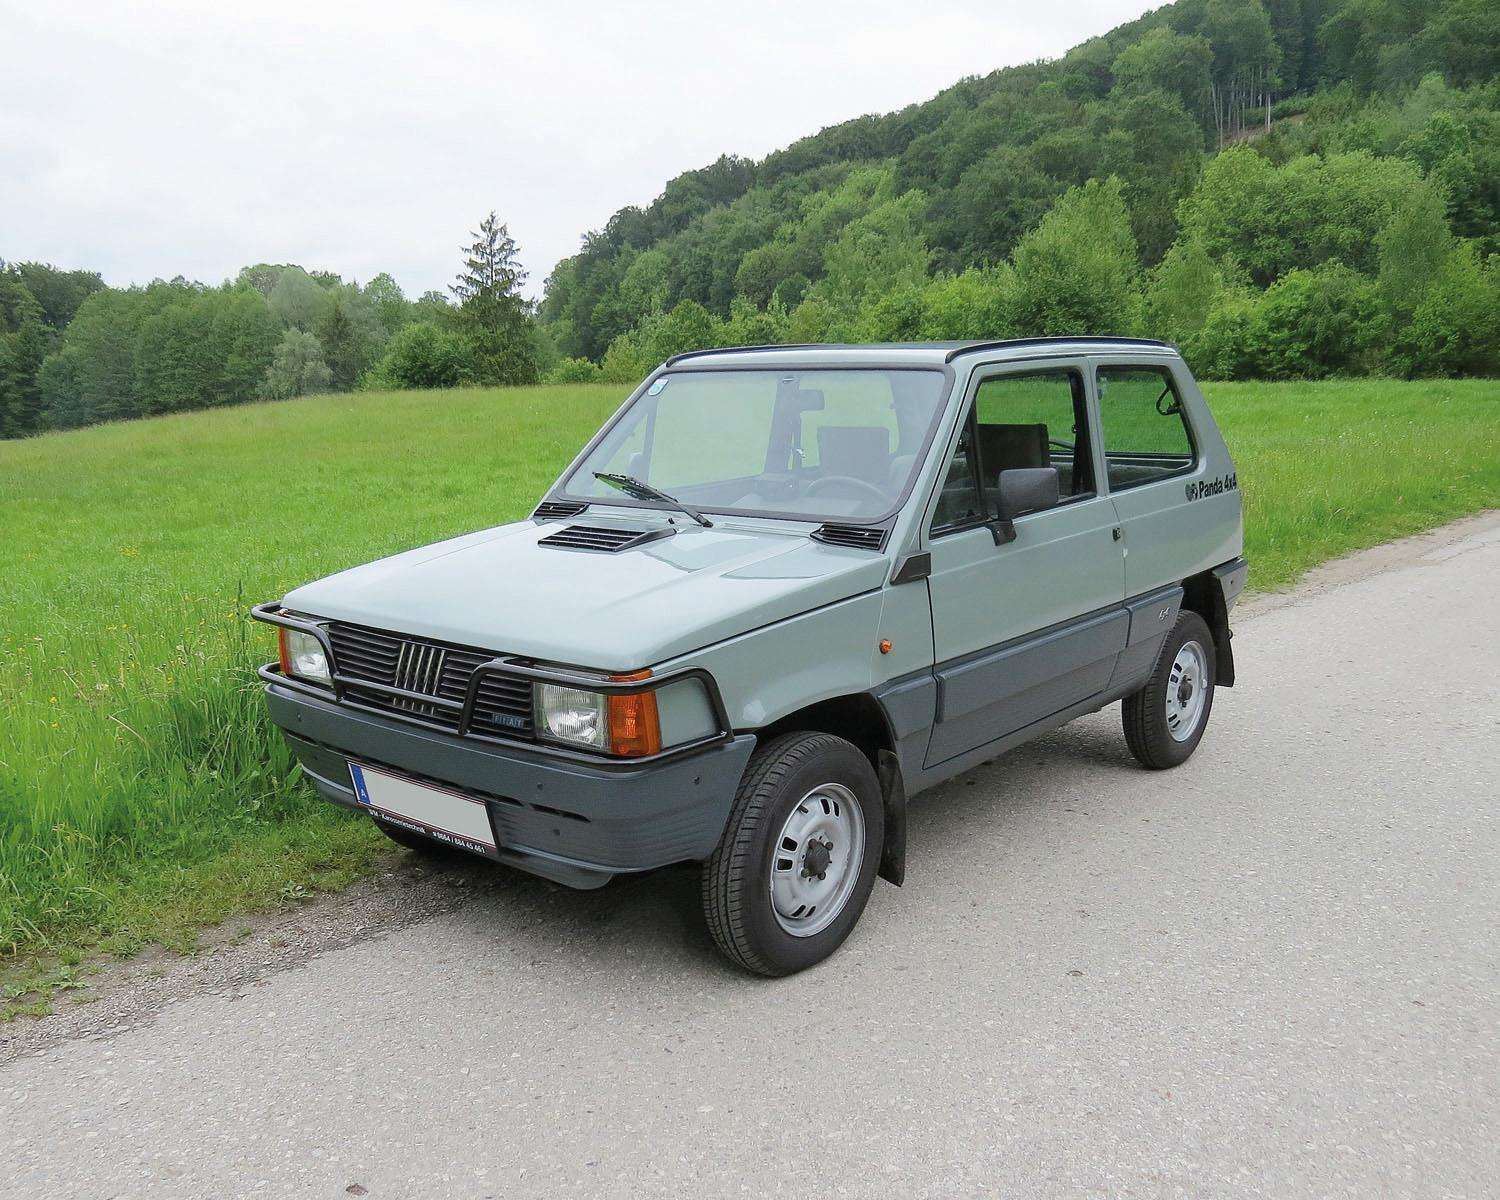 1983 Steyr Fiat Panda 4x4 No Reserve Classic Cars 2016 06 18 Realized Price Eur 9 660 Dorotheum